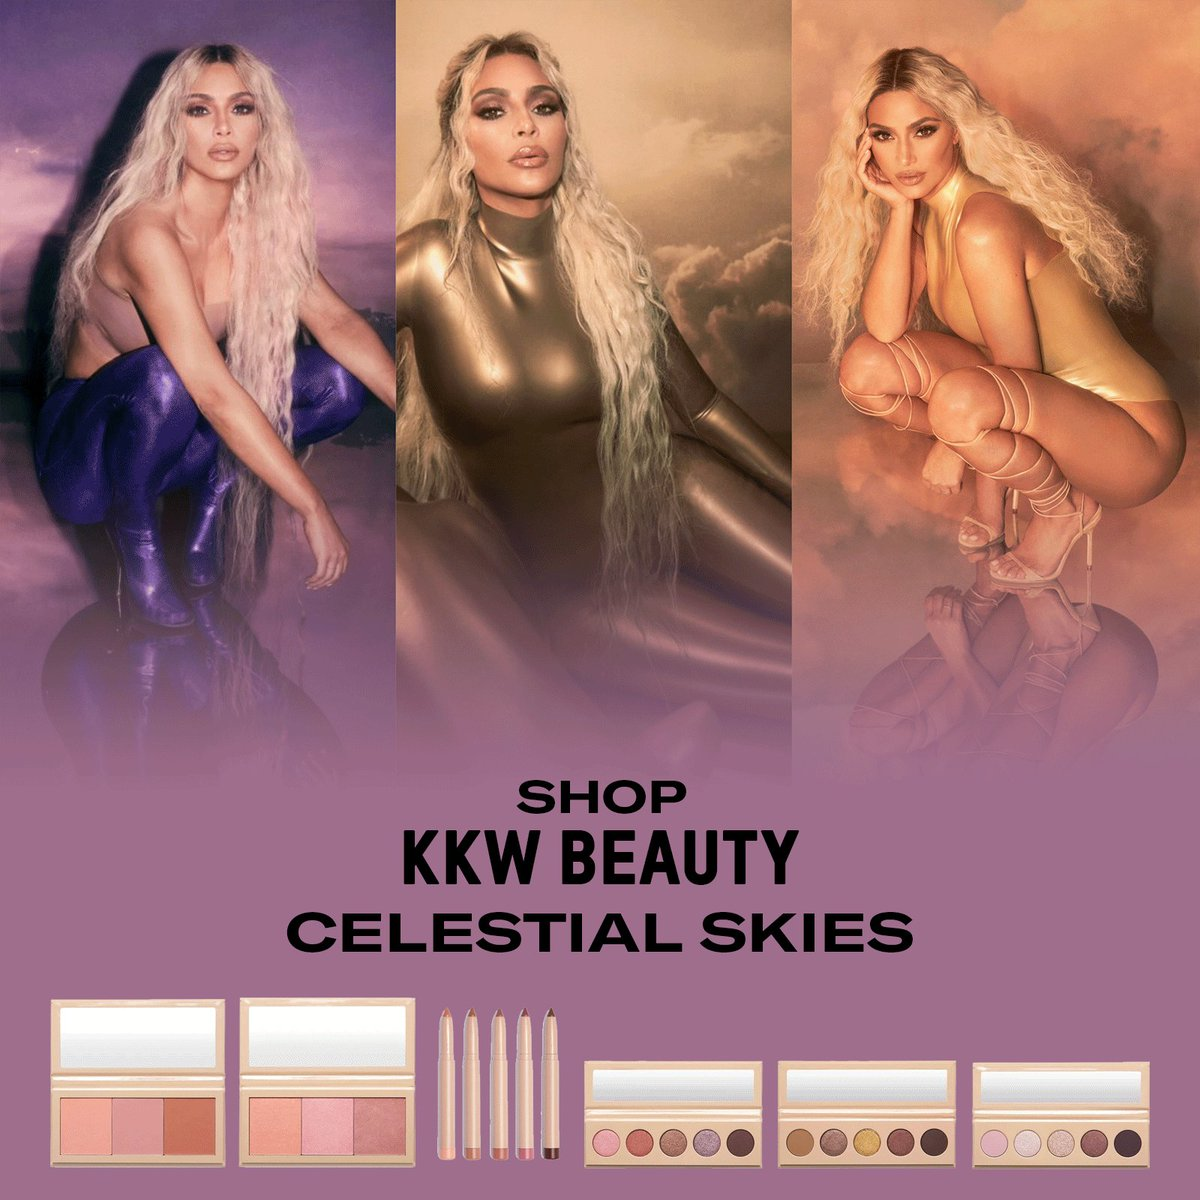 Shop @kkwbeauty  Celestial Skies Collection now only at  http://KKWBEAUTY.COM   #CelestialSkies